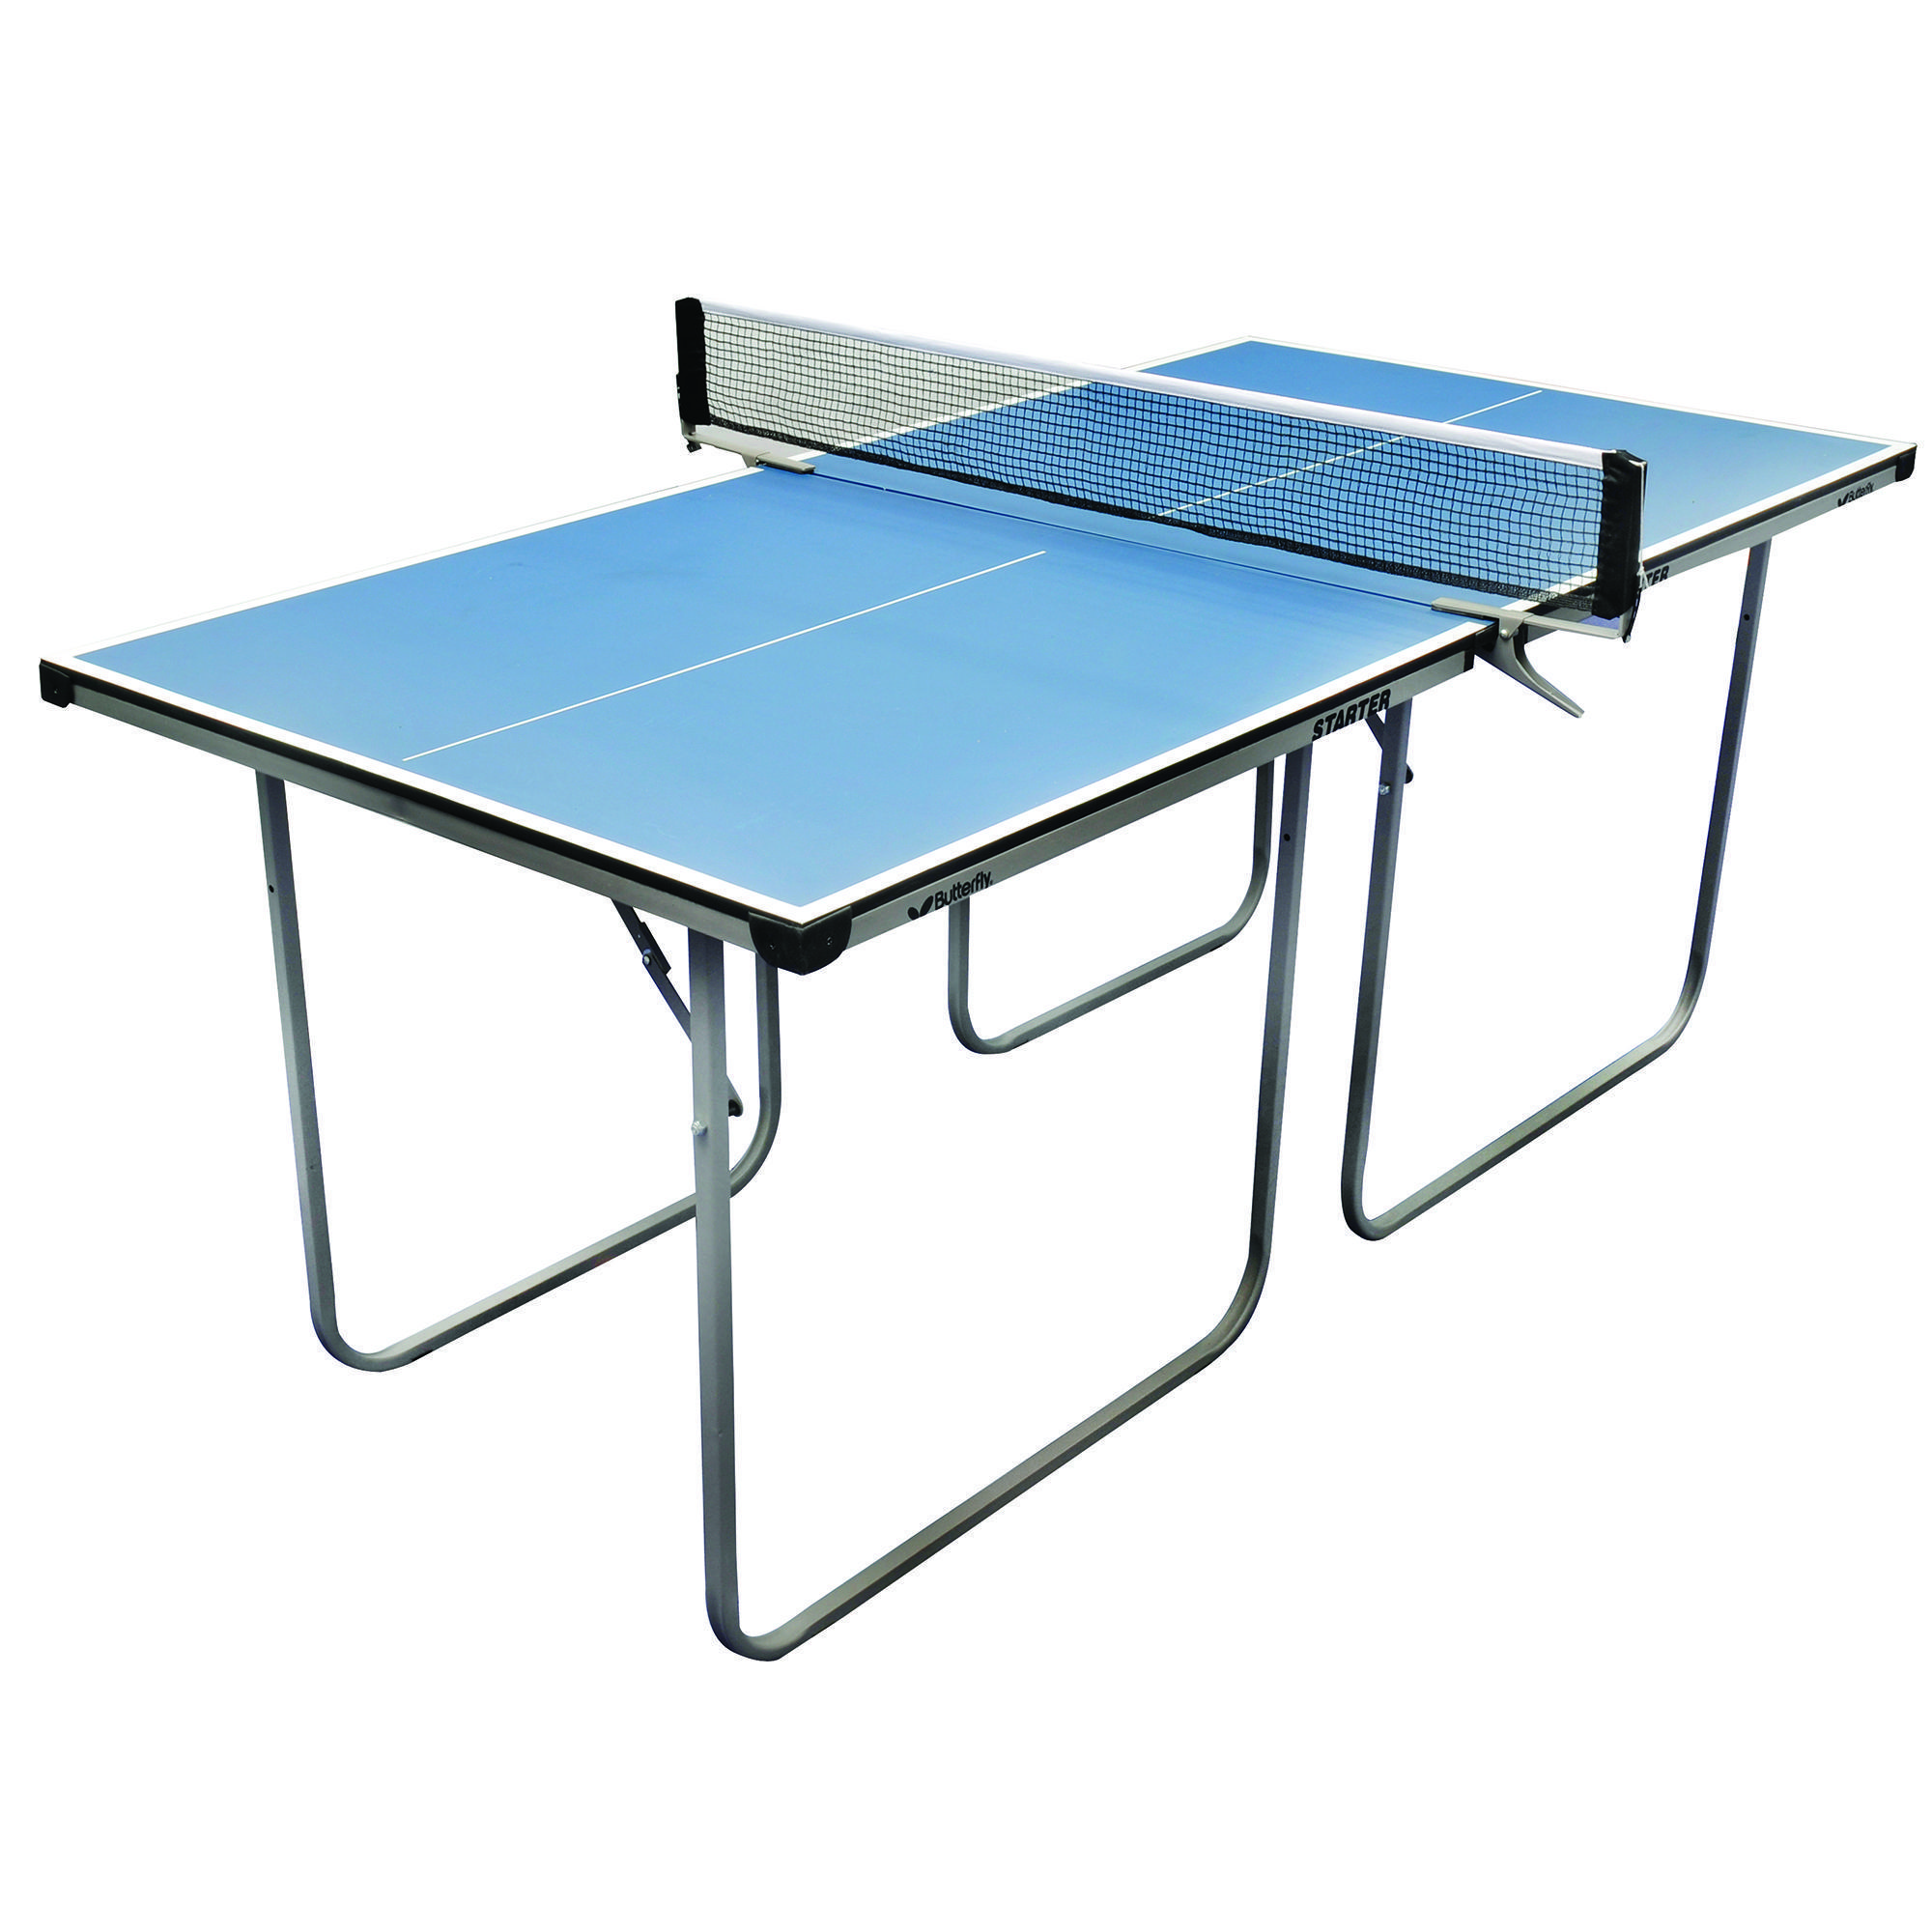 com racket grubba tennis balance butterfly other table eng